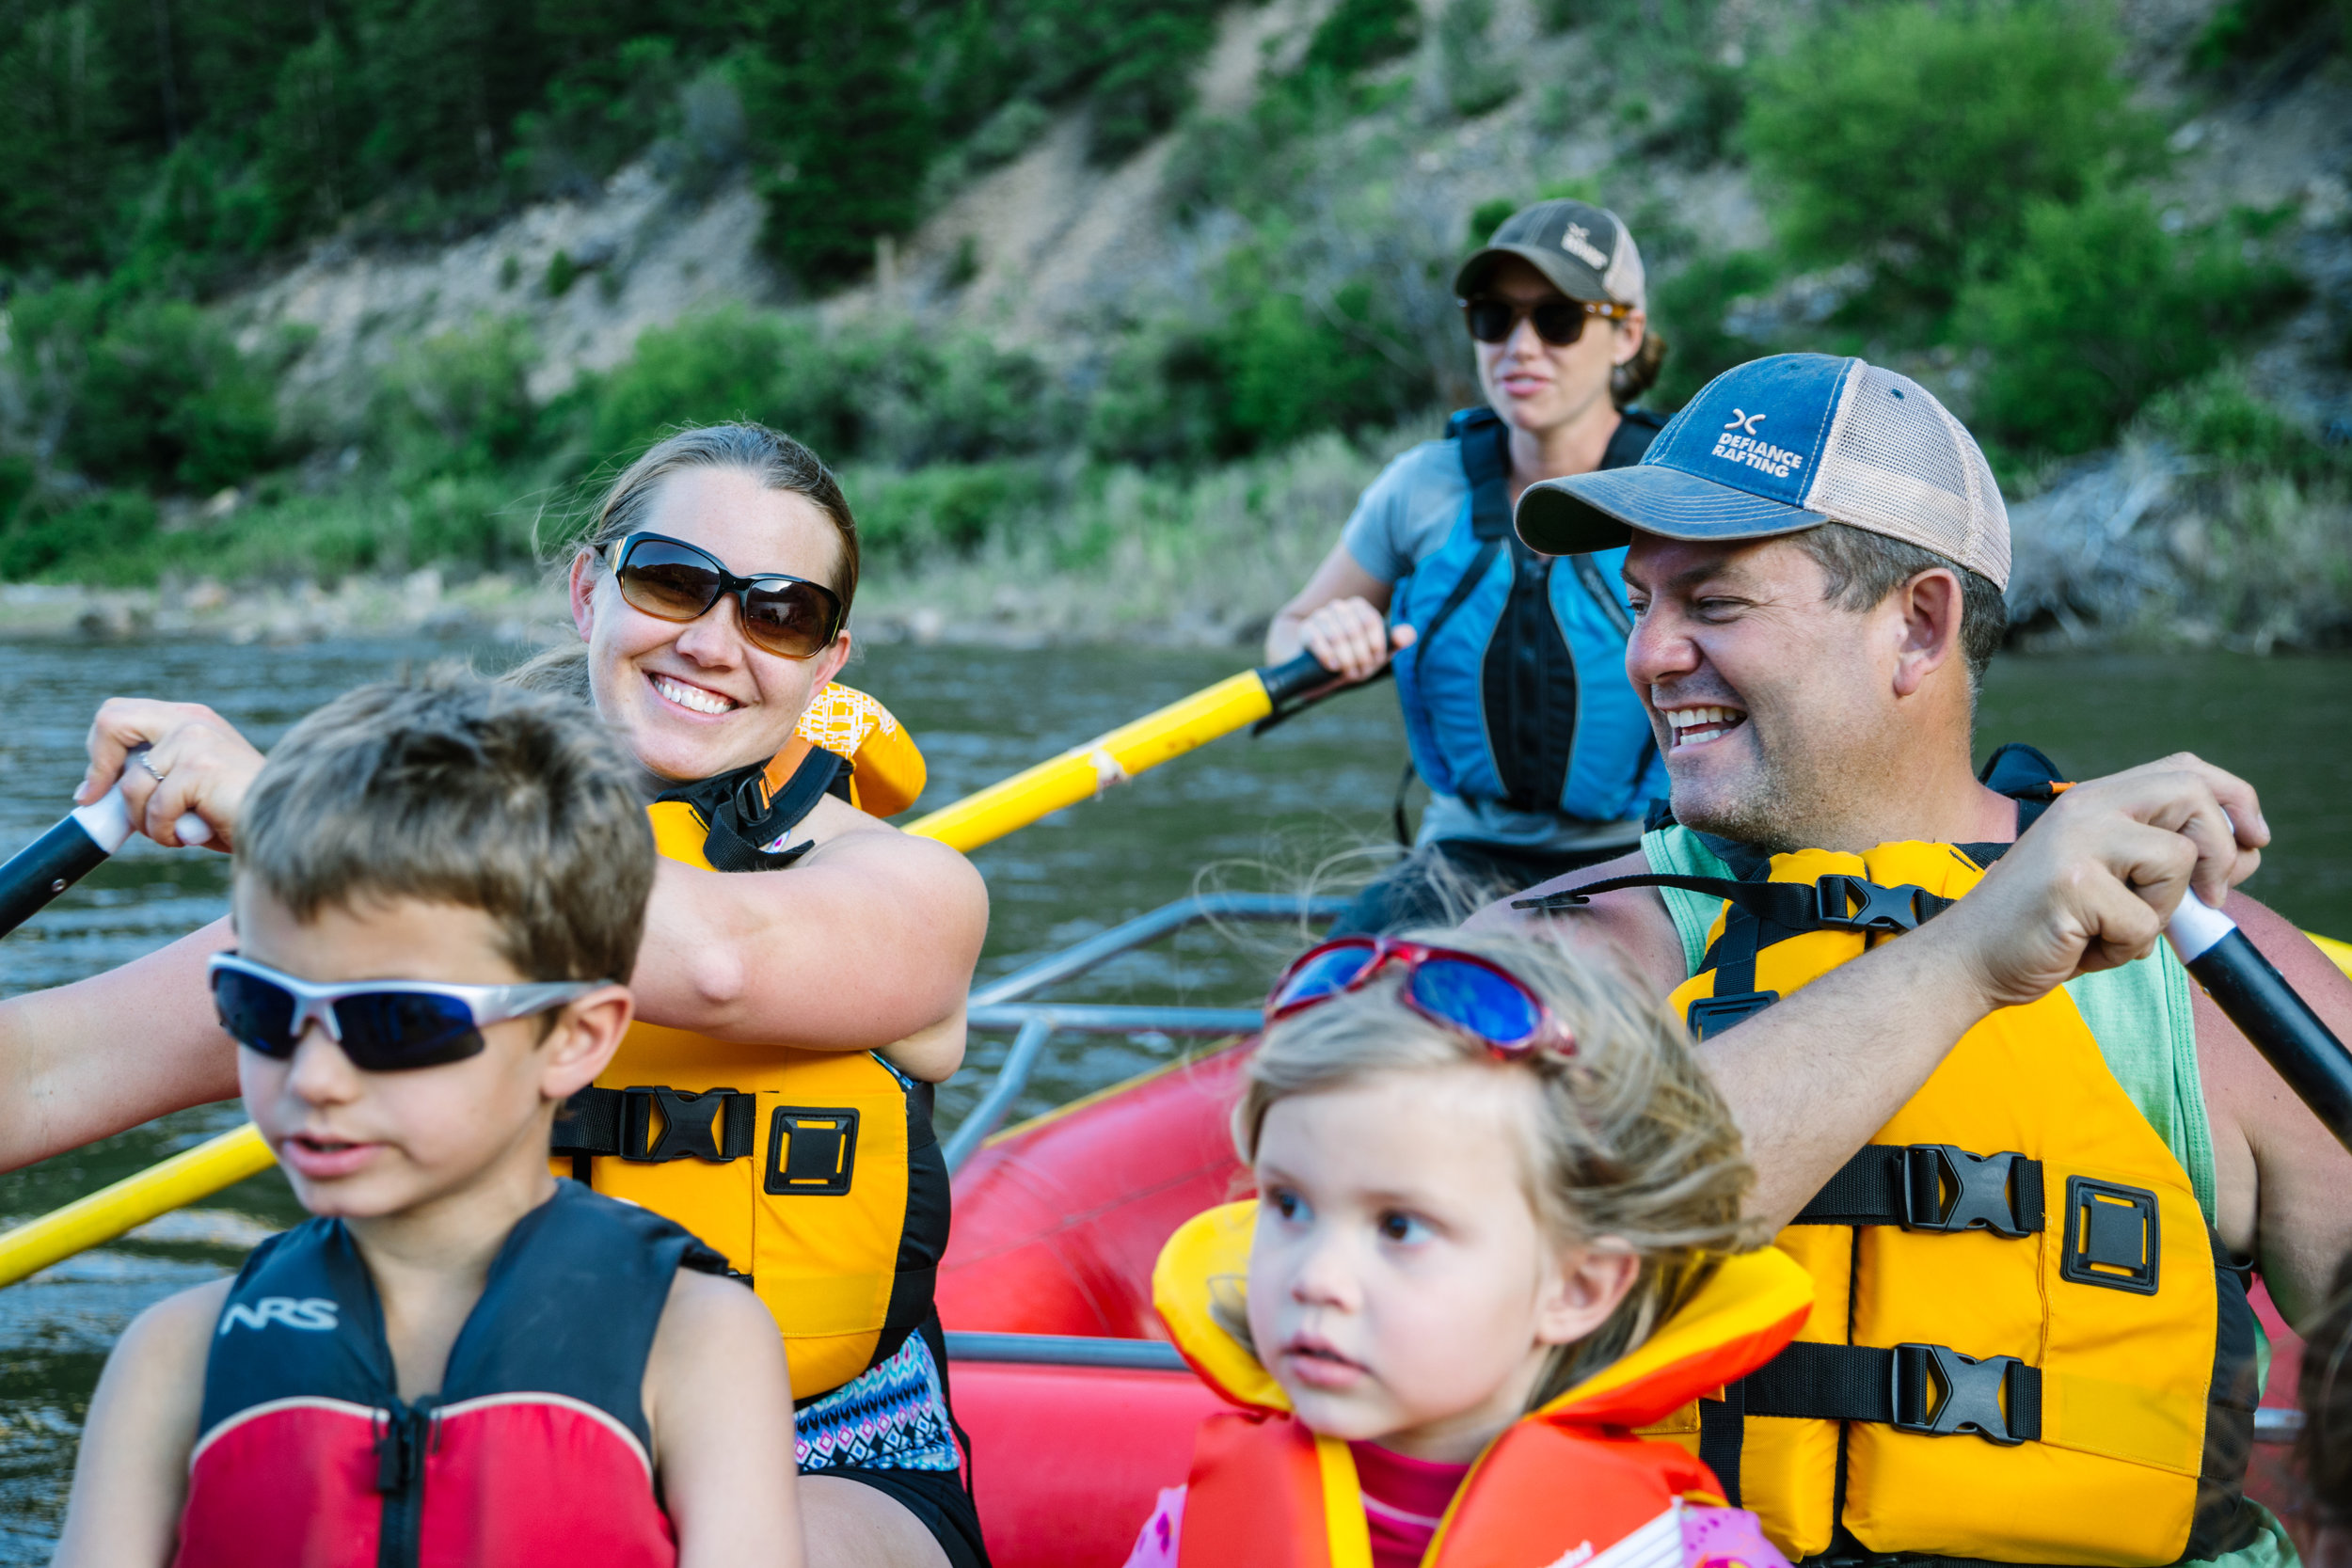 Family time on the Lower Roaring Fork River with Defiance Rafting Company.